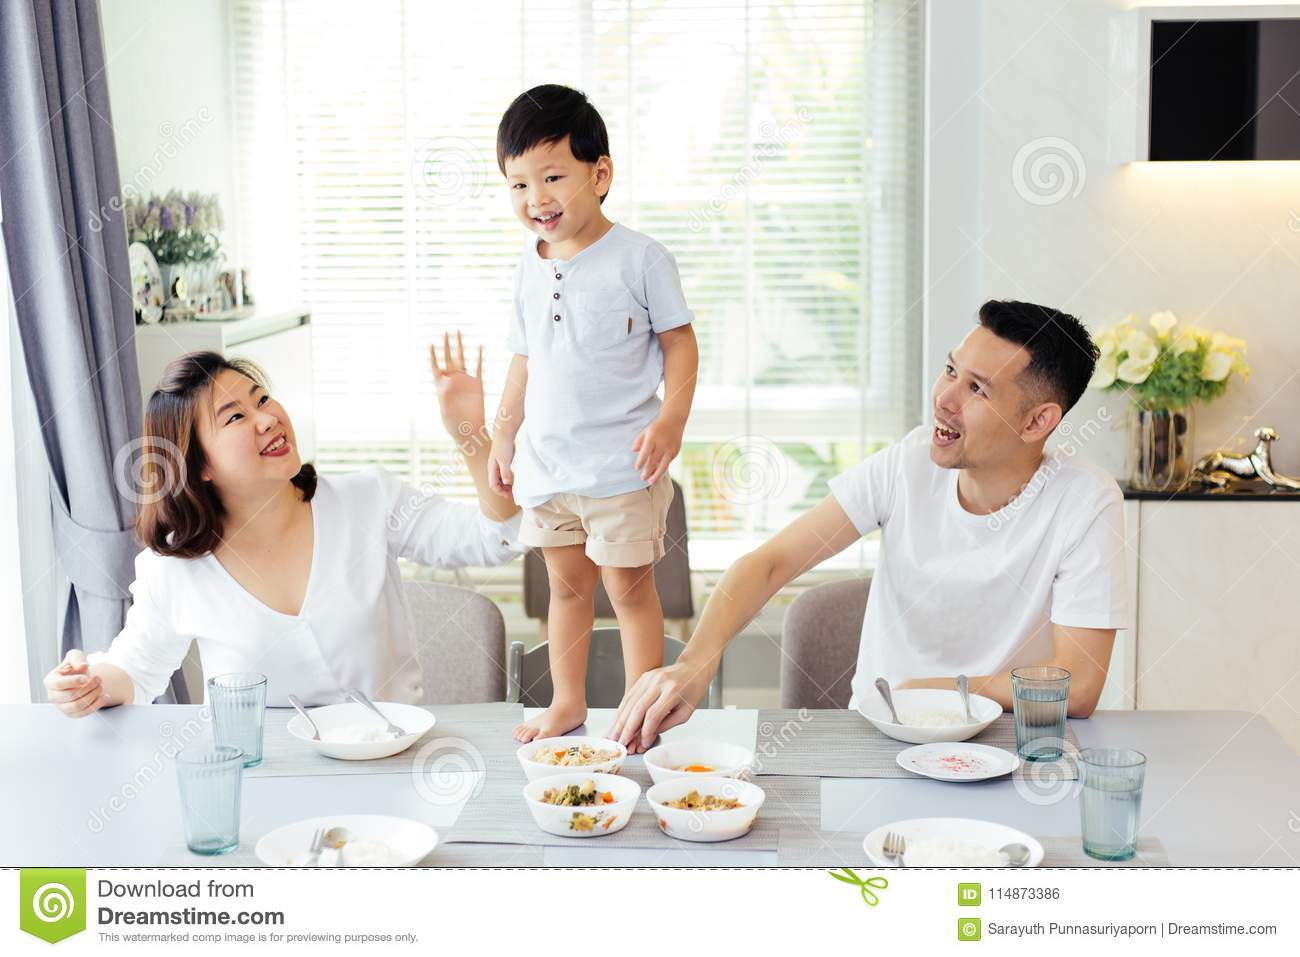 Asian family watching their kid as he is determined and proud to finally stand on the dining table.